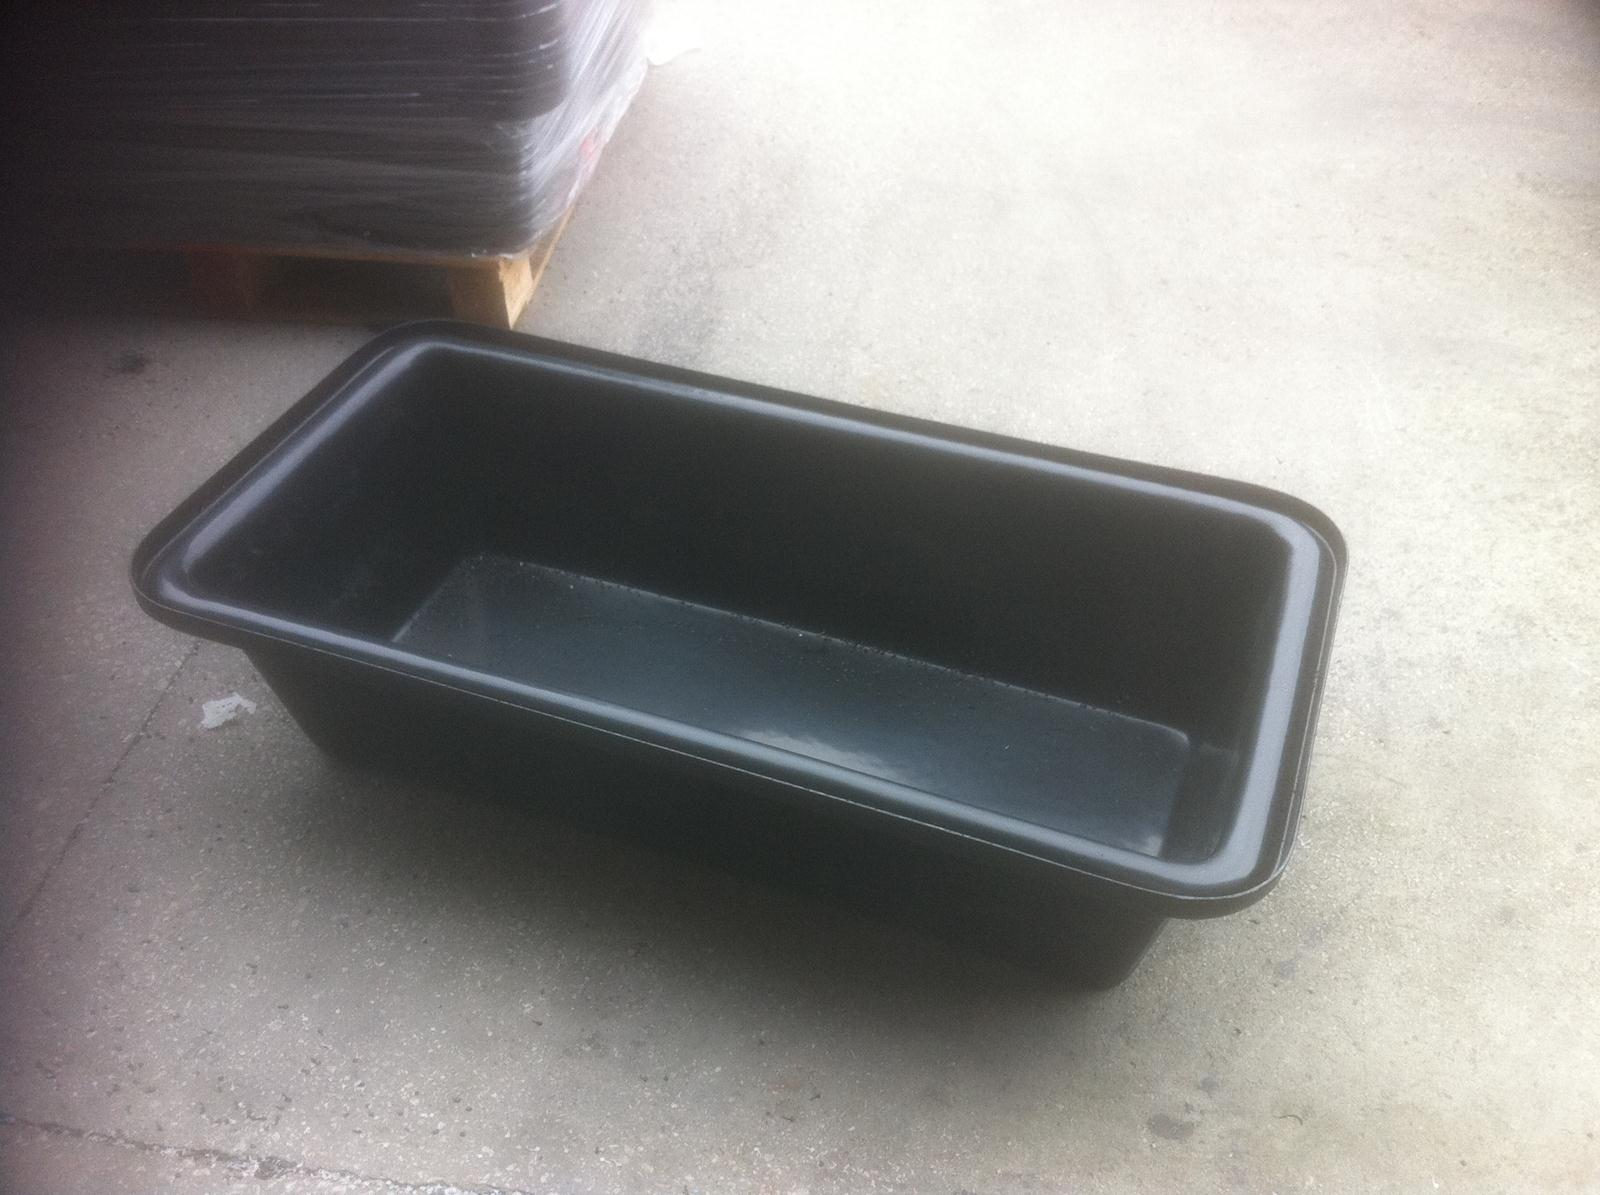 bin corners cleaning and tubs edges simple plastic tub easy originalviews rectangle reinforced bus nice rounded ribs storage limiting red stunning bottom large sharp handles with